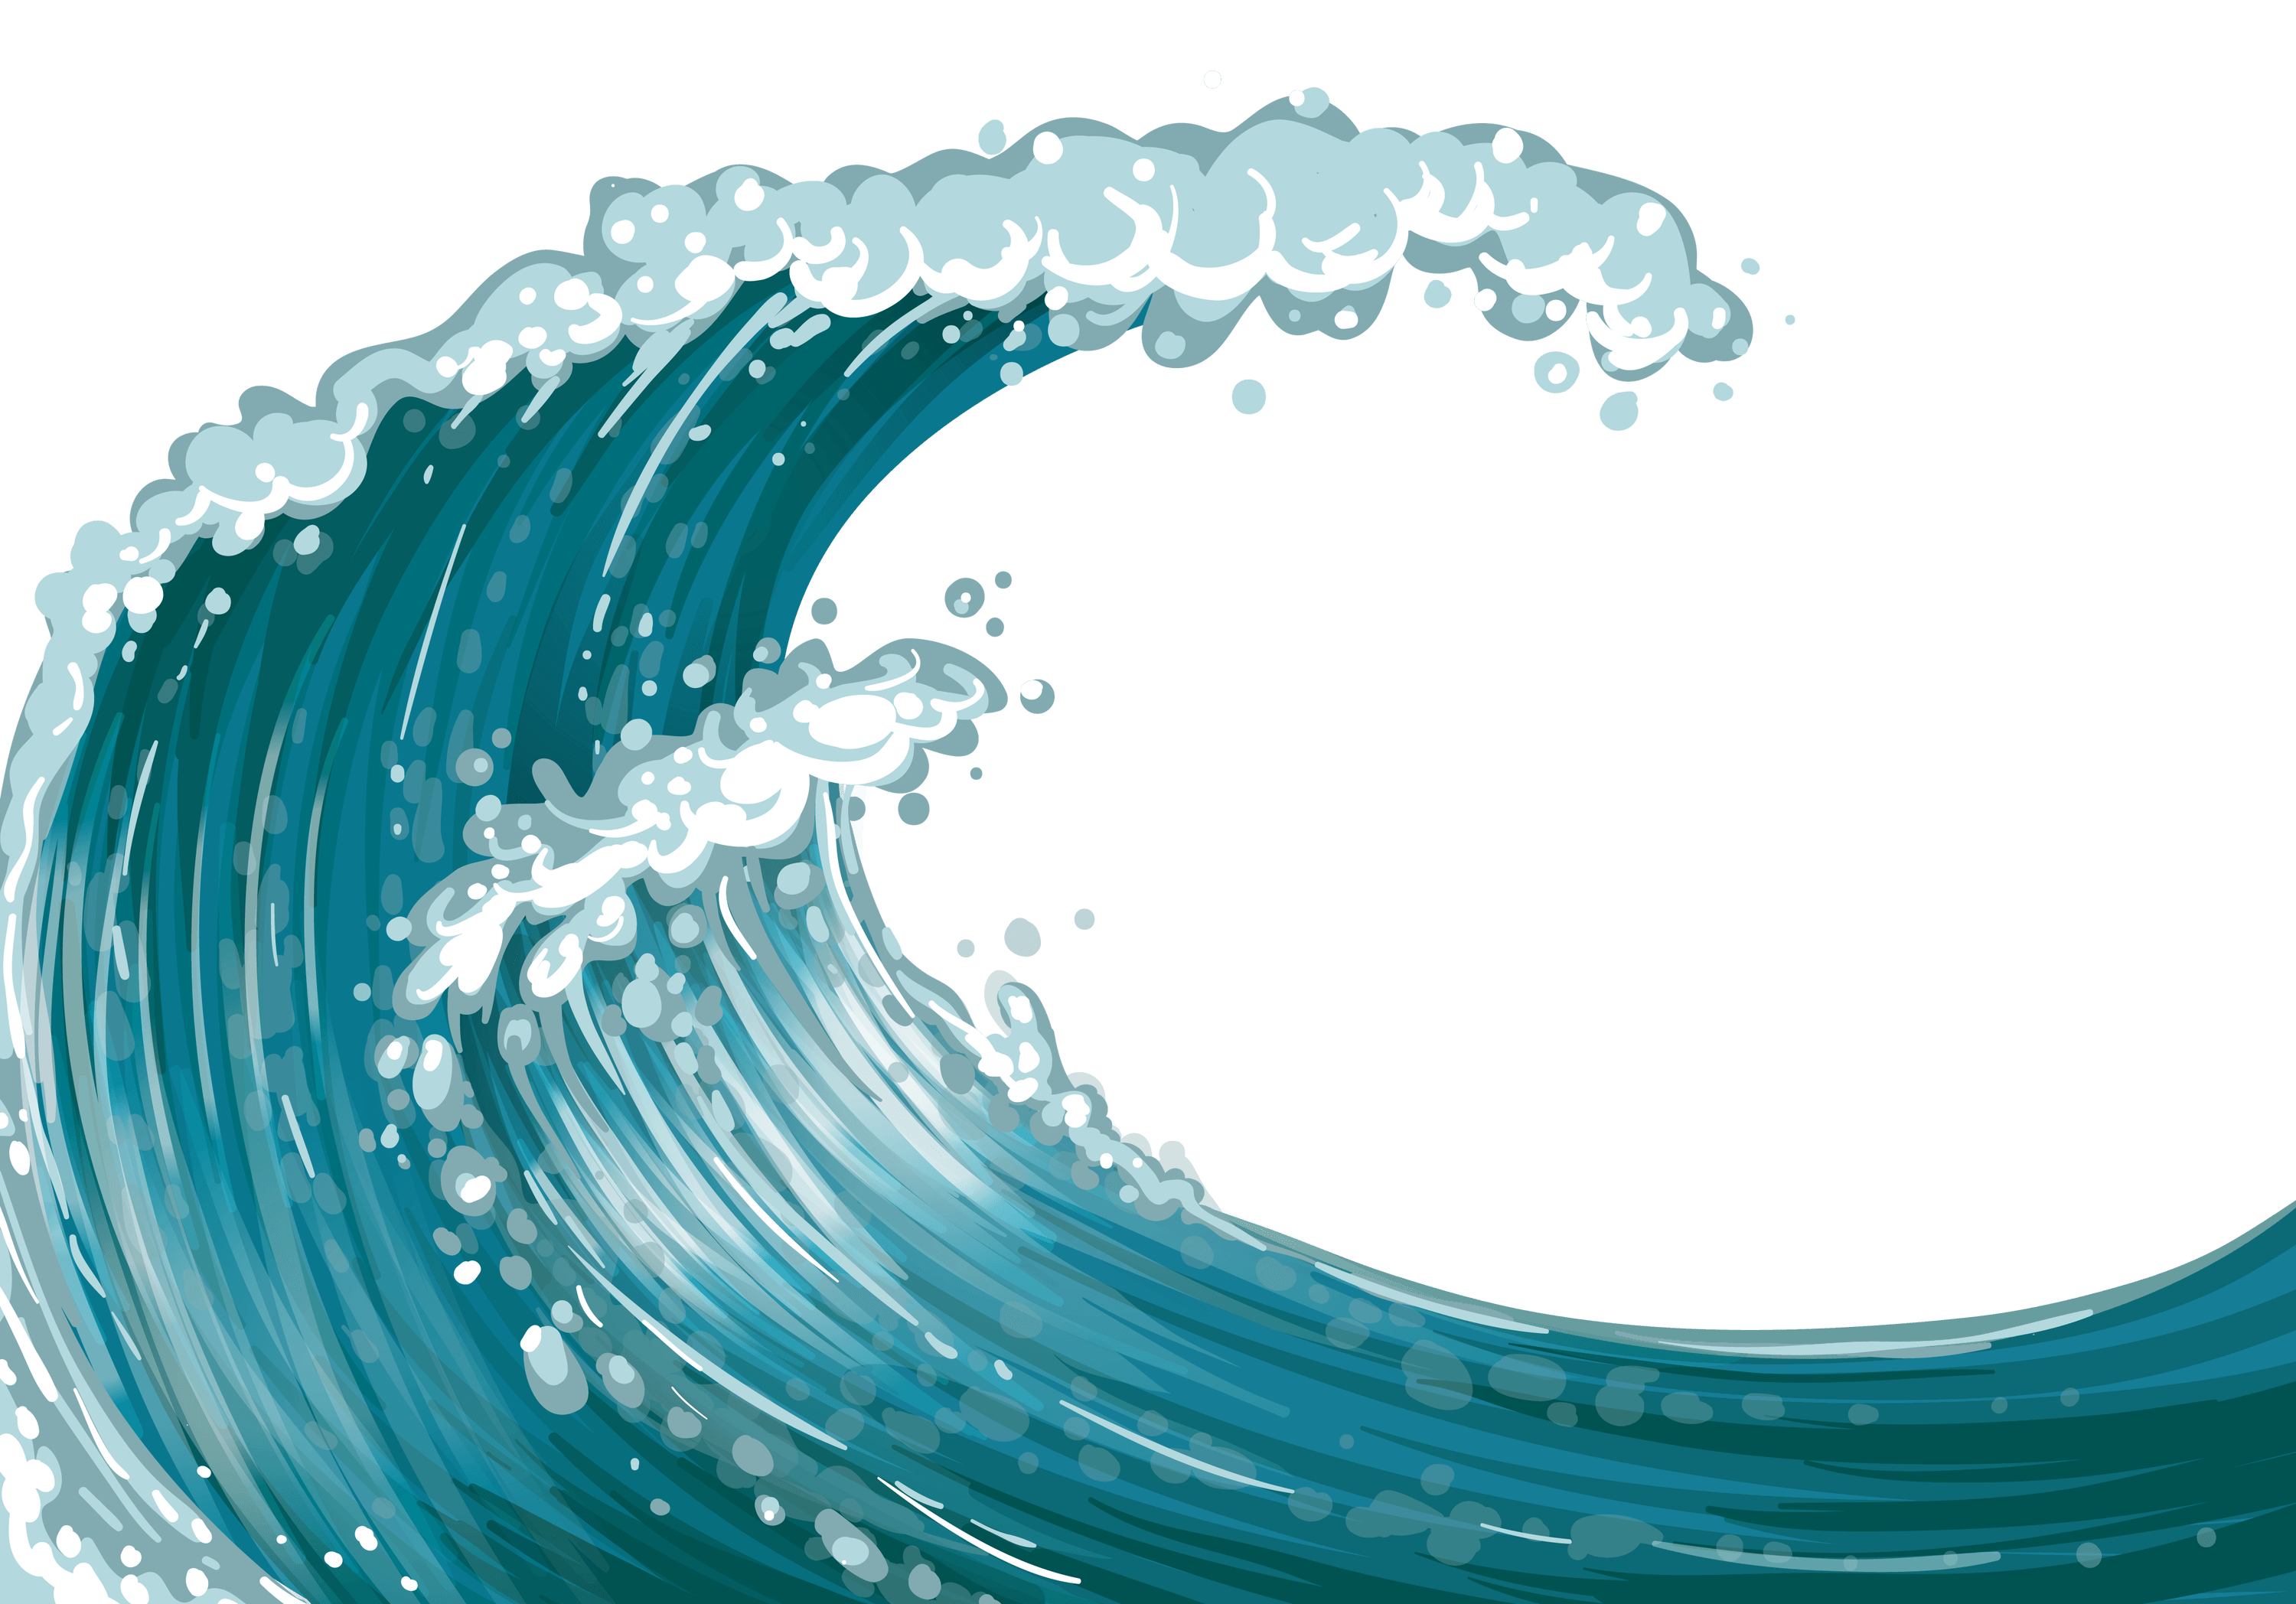 Wave transparent png stickpng. Waves clipart wipeout